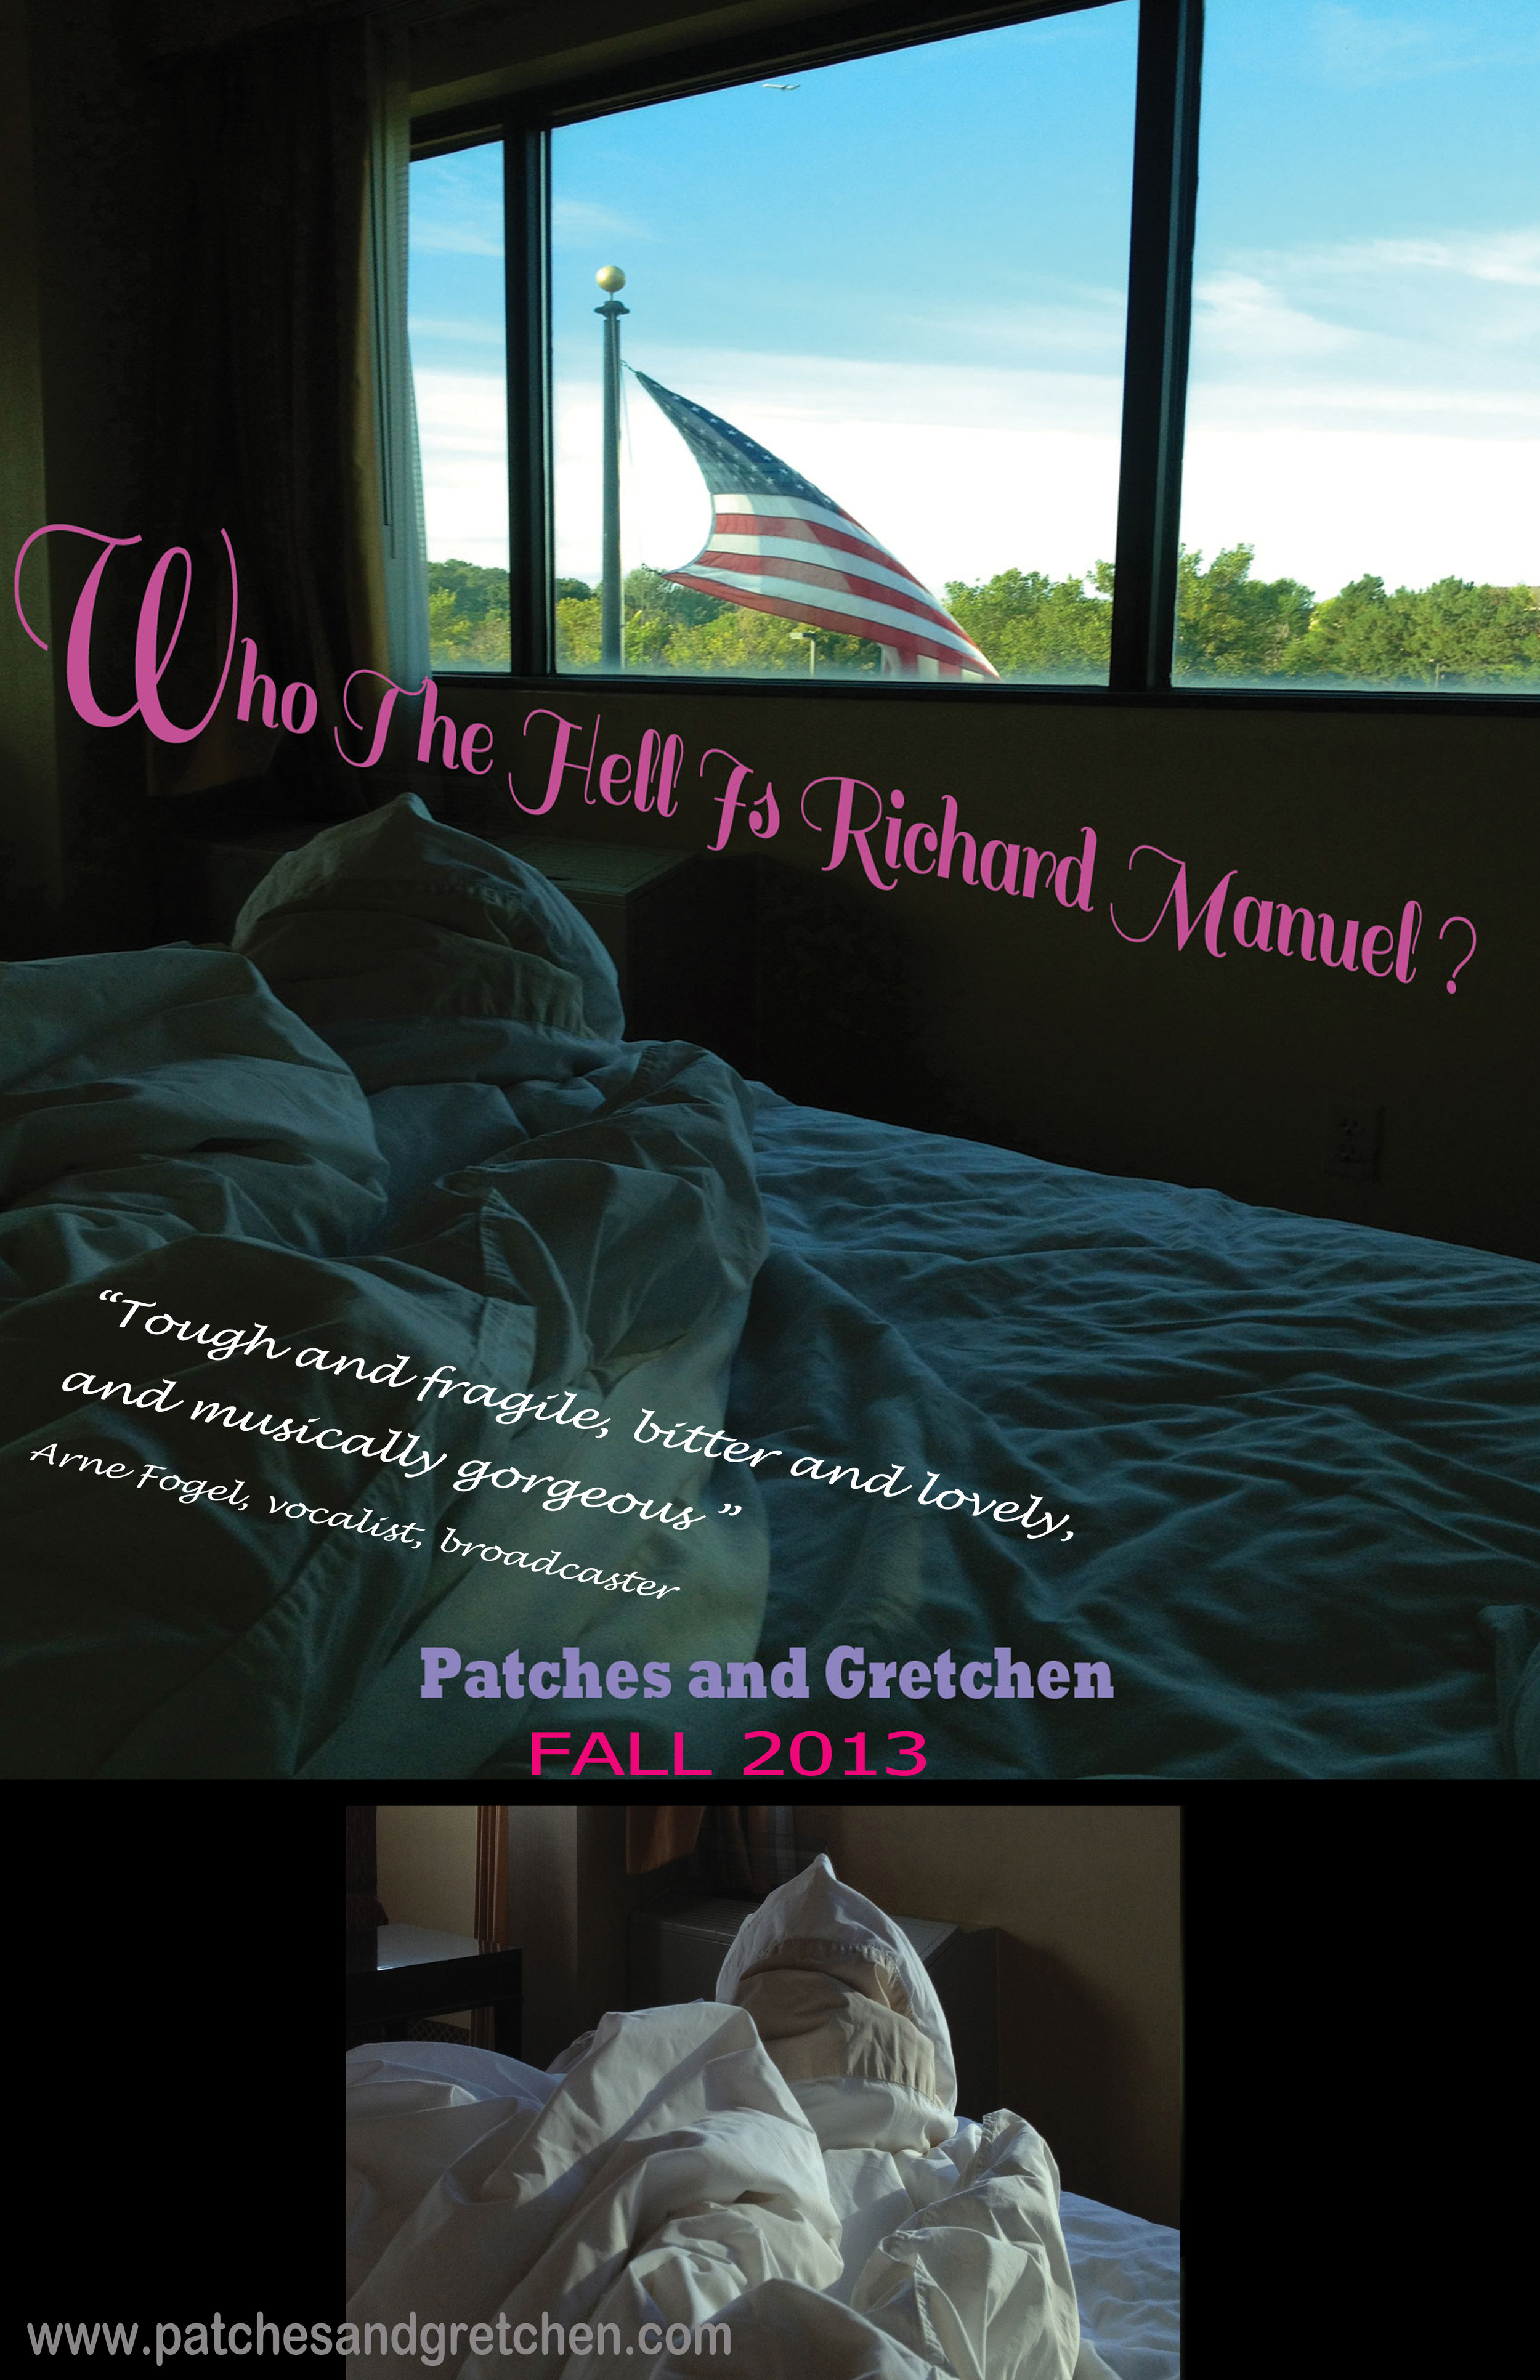 Who The Hell Is Richard Manuel? Patches and GretchenFALL 2013 Poster and Photo by Gretchen Seichrist